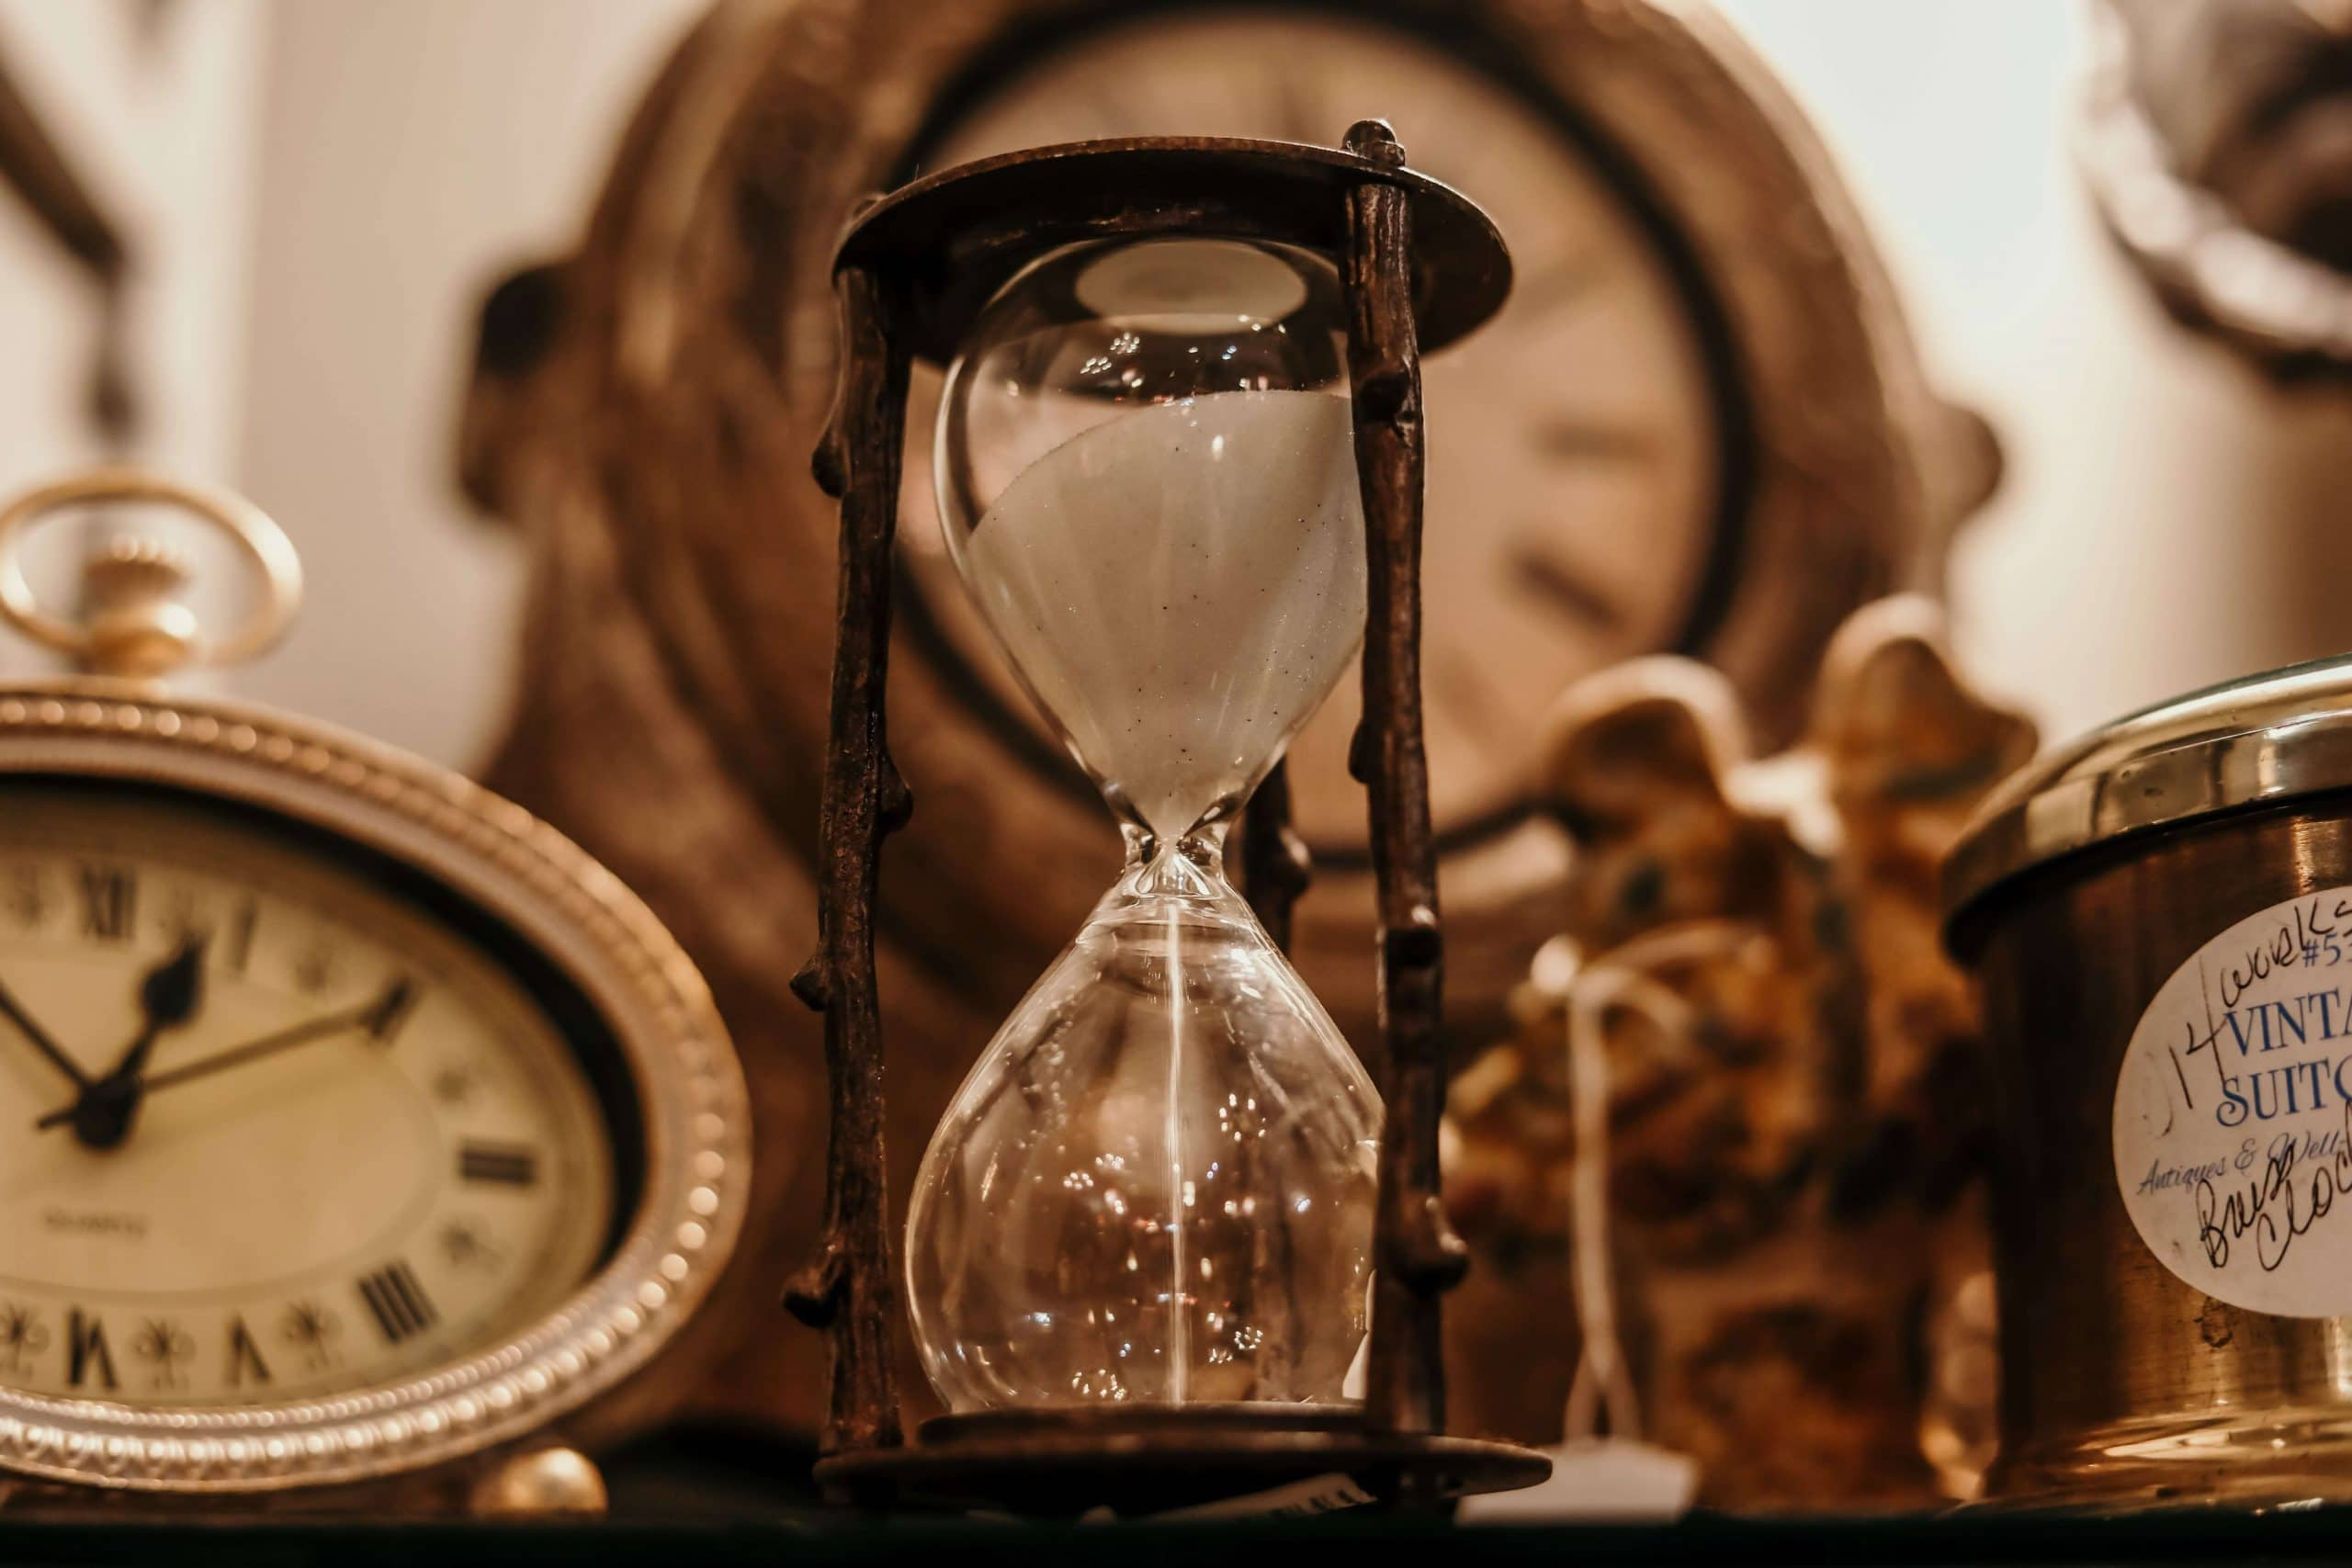 Aenigma Escape Room in Naples - Articulate Your Thoughts in Time